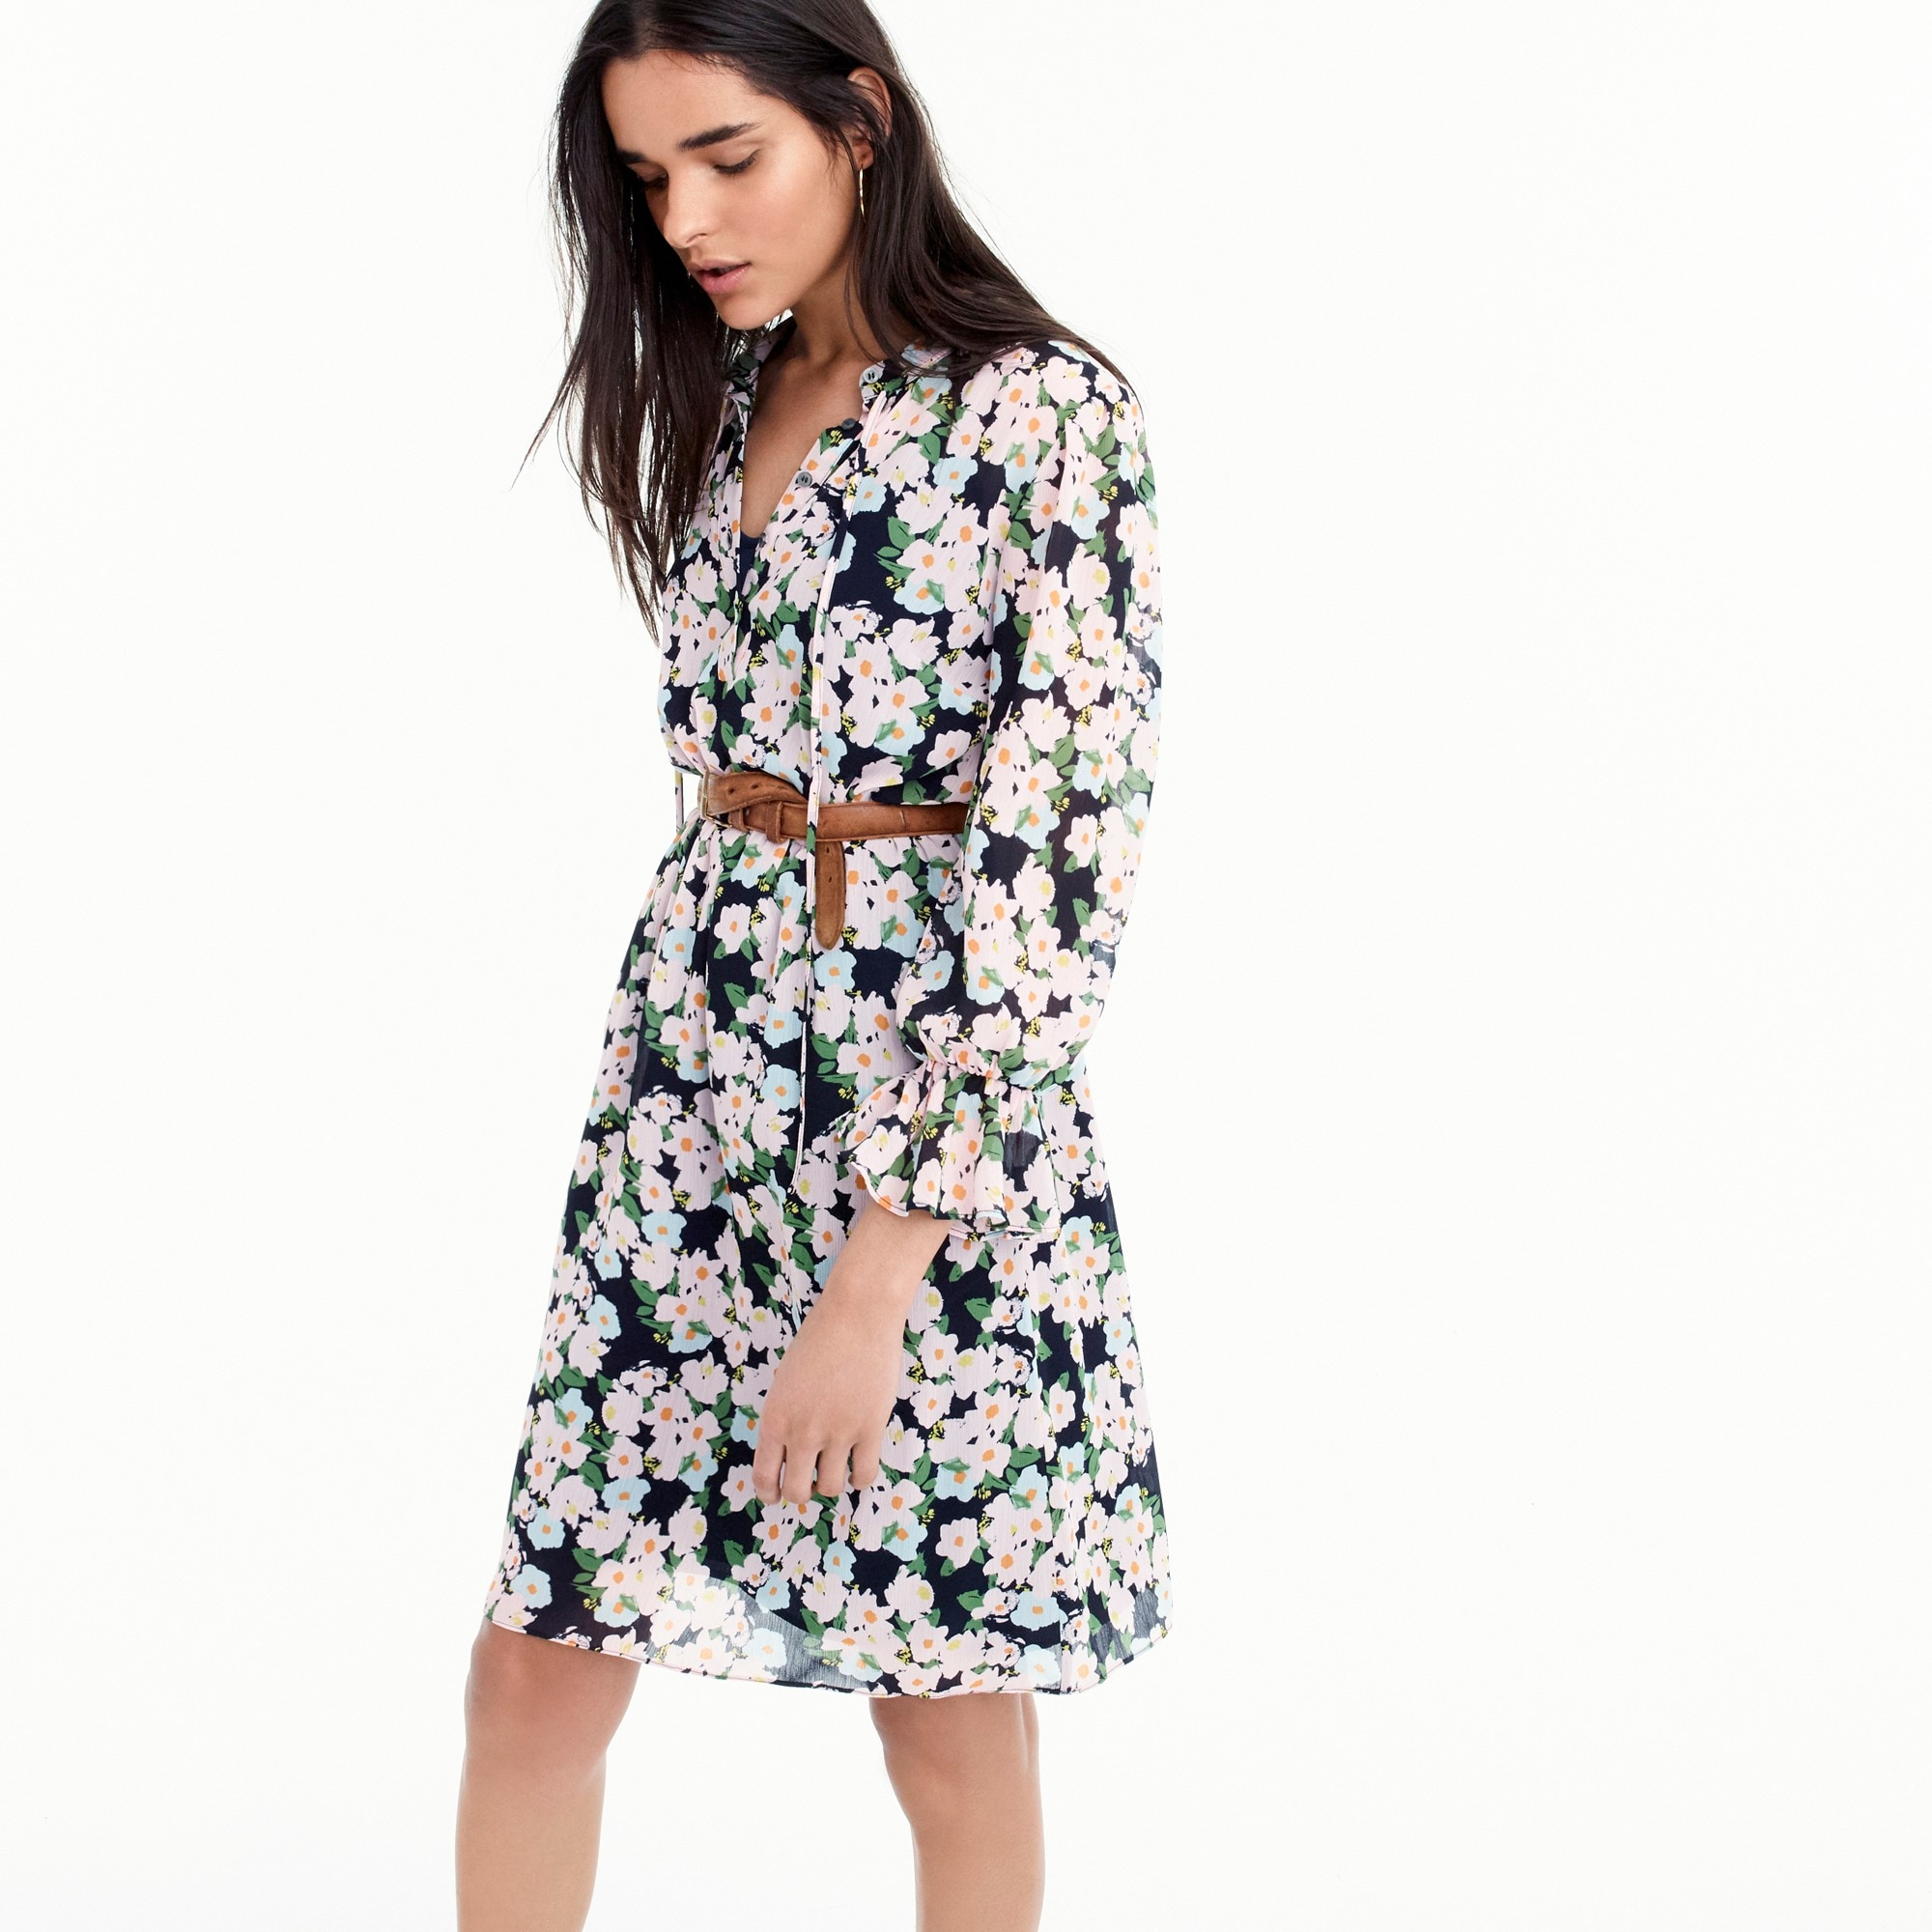 J.Crew Mercantile drapey tie-front dress in French floral women dresses c